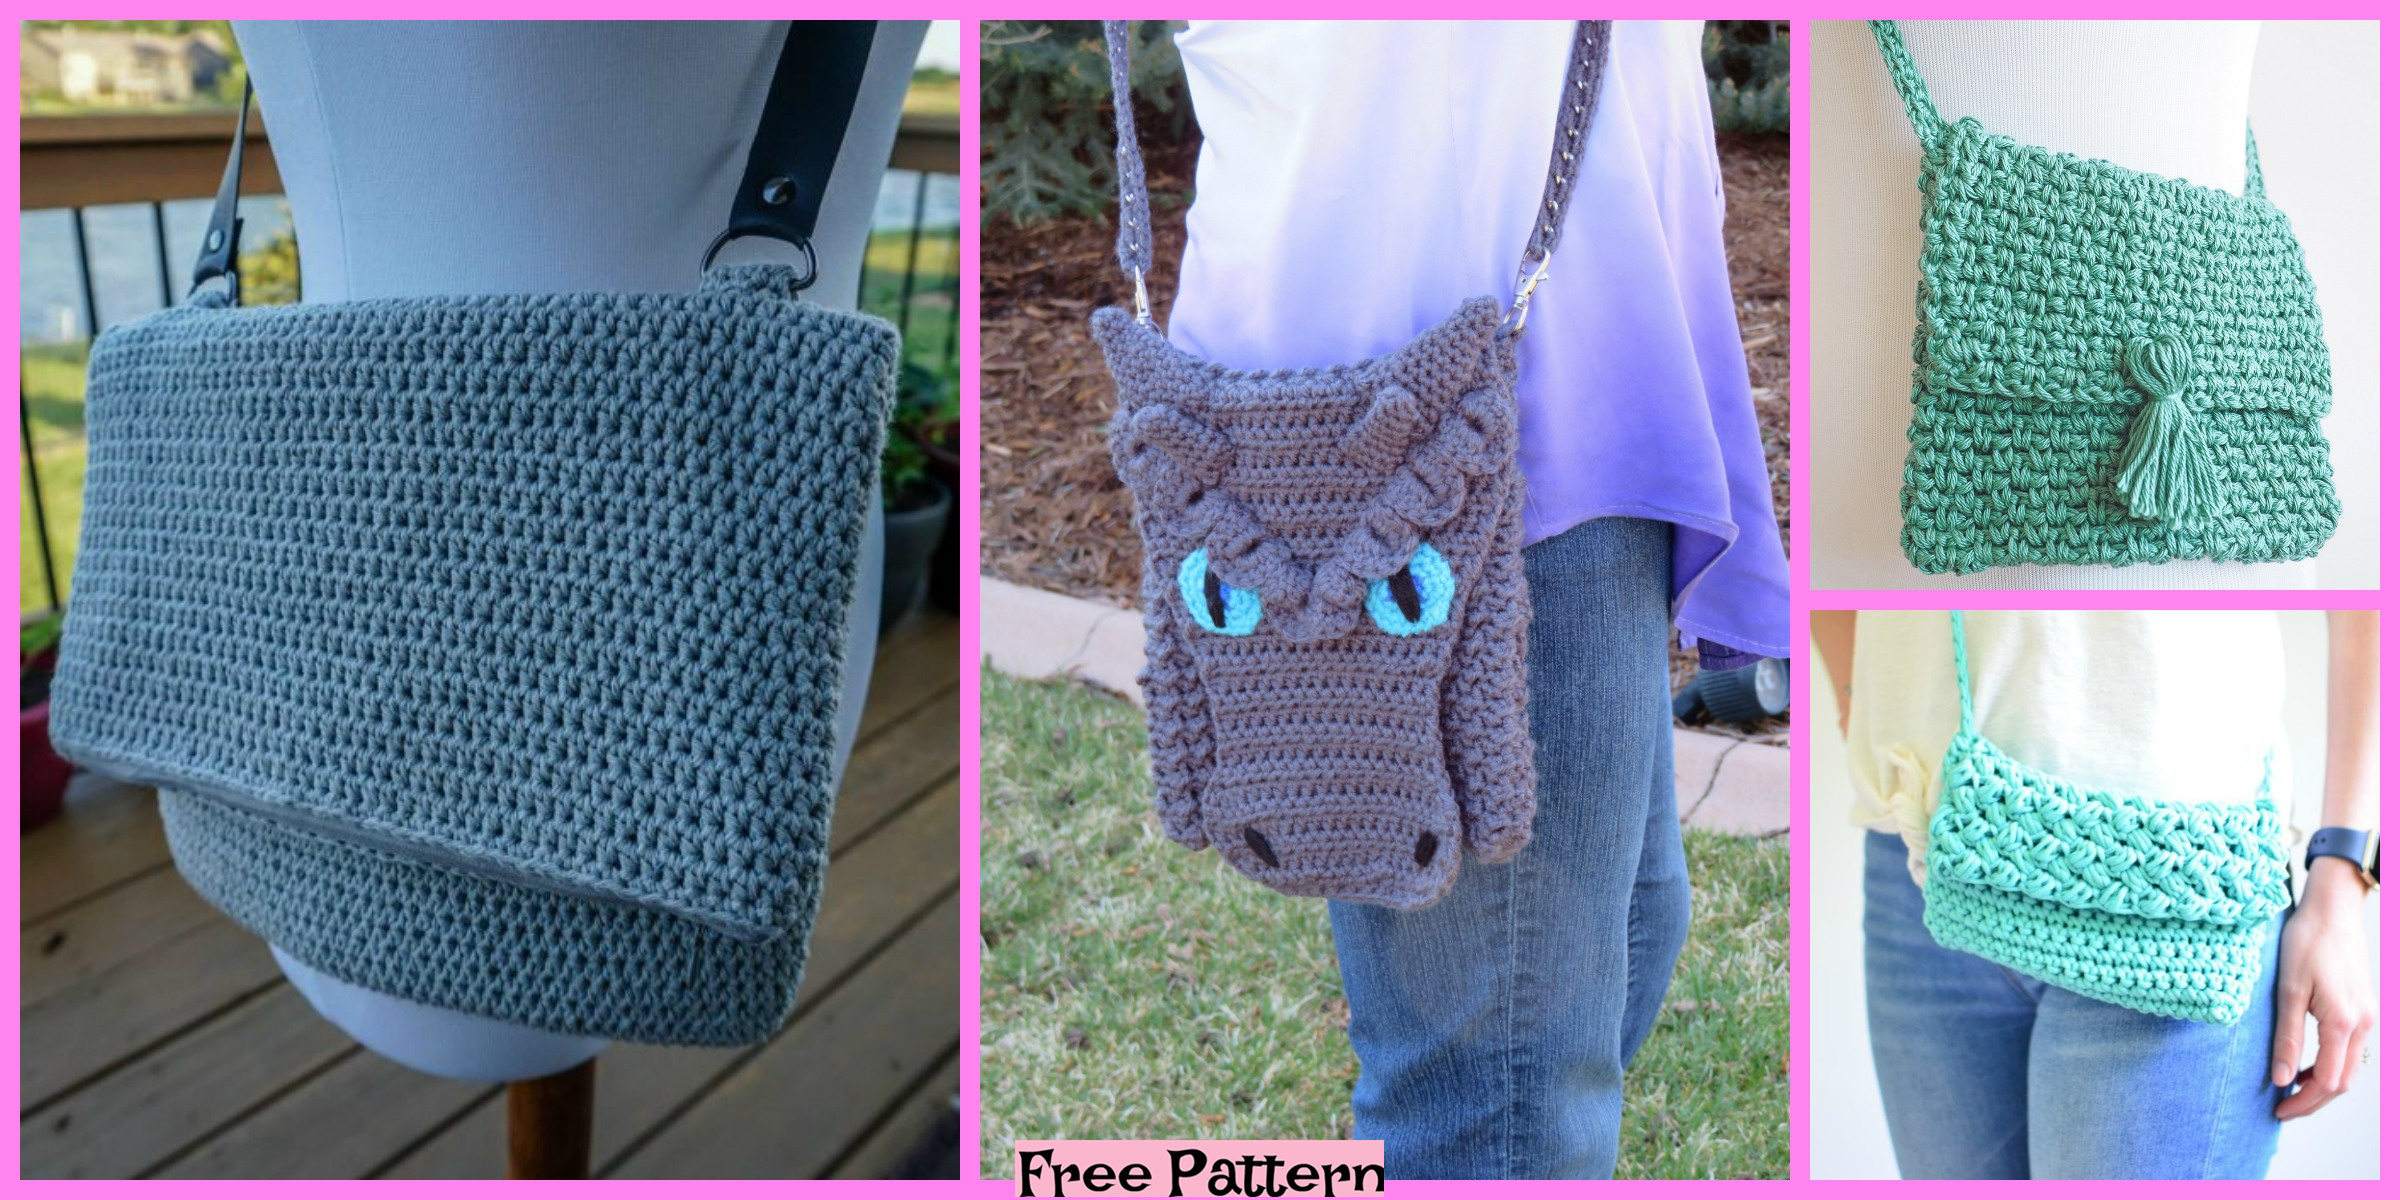 6 Crochet Cross Body Bag Free Patterns